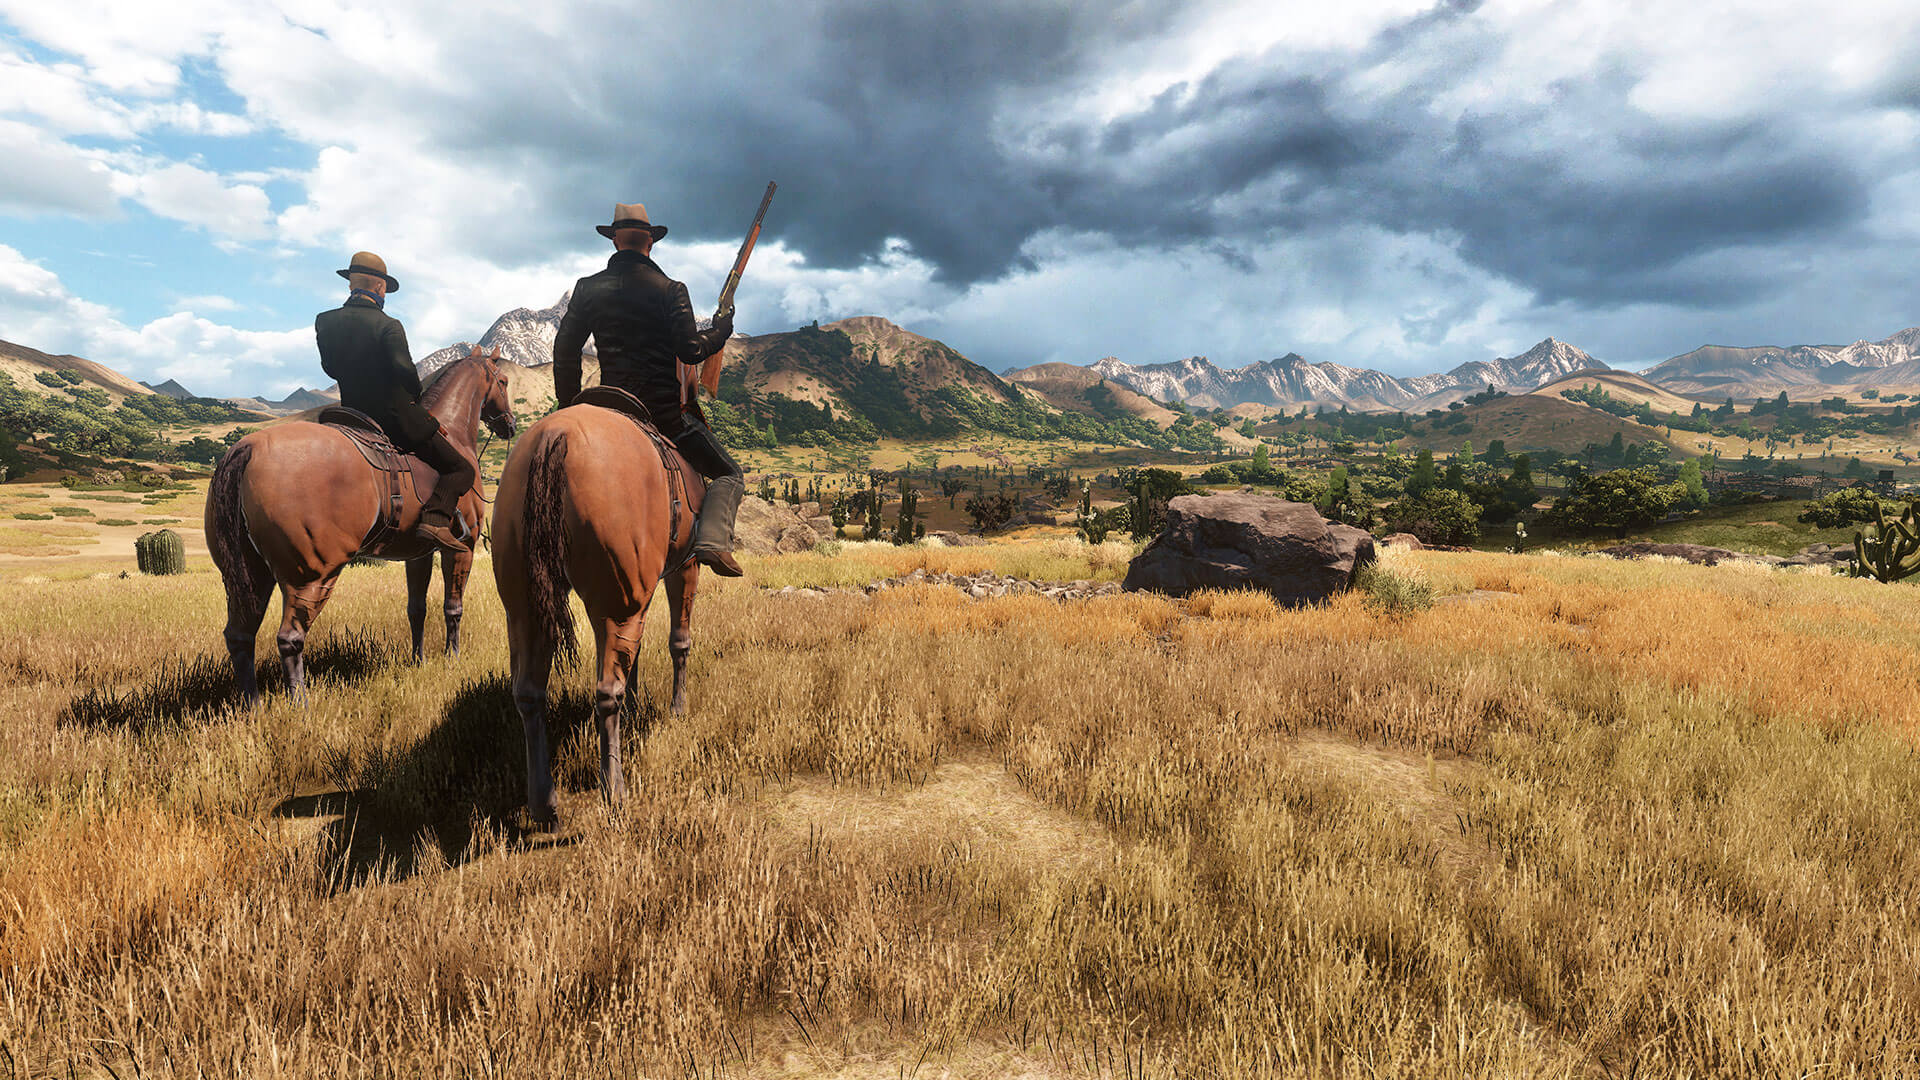 Leaked Red Dead 2 Image Turns Out to Be Upcoming MMO Wild West Online